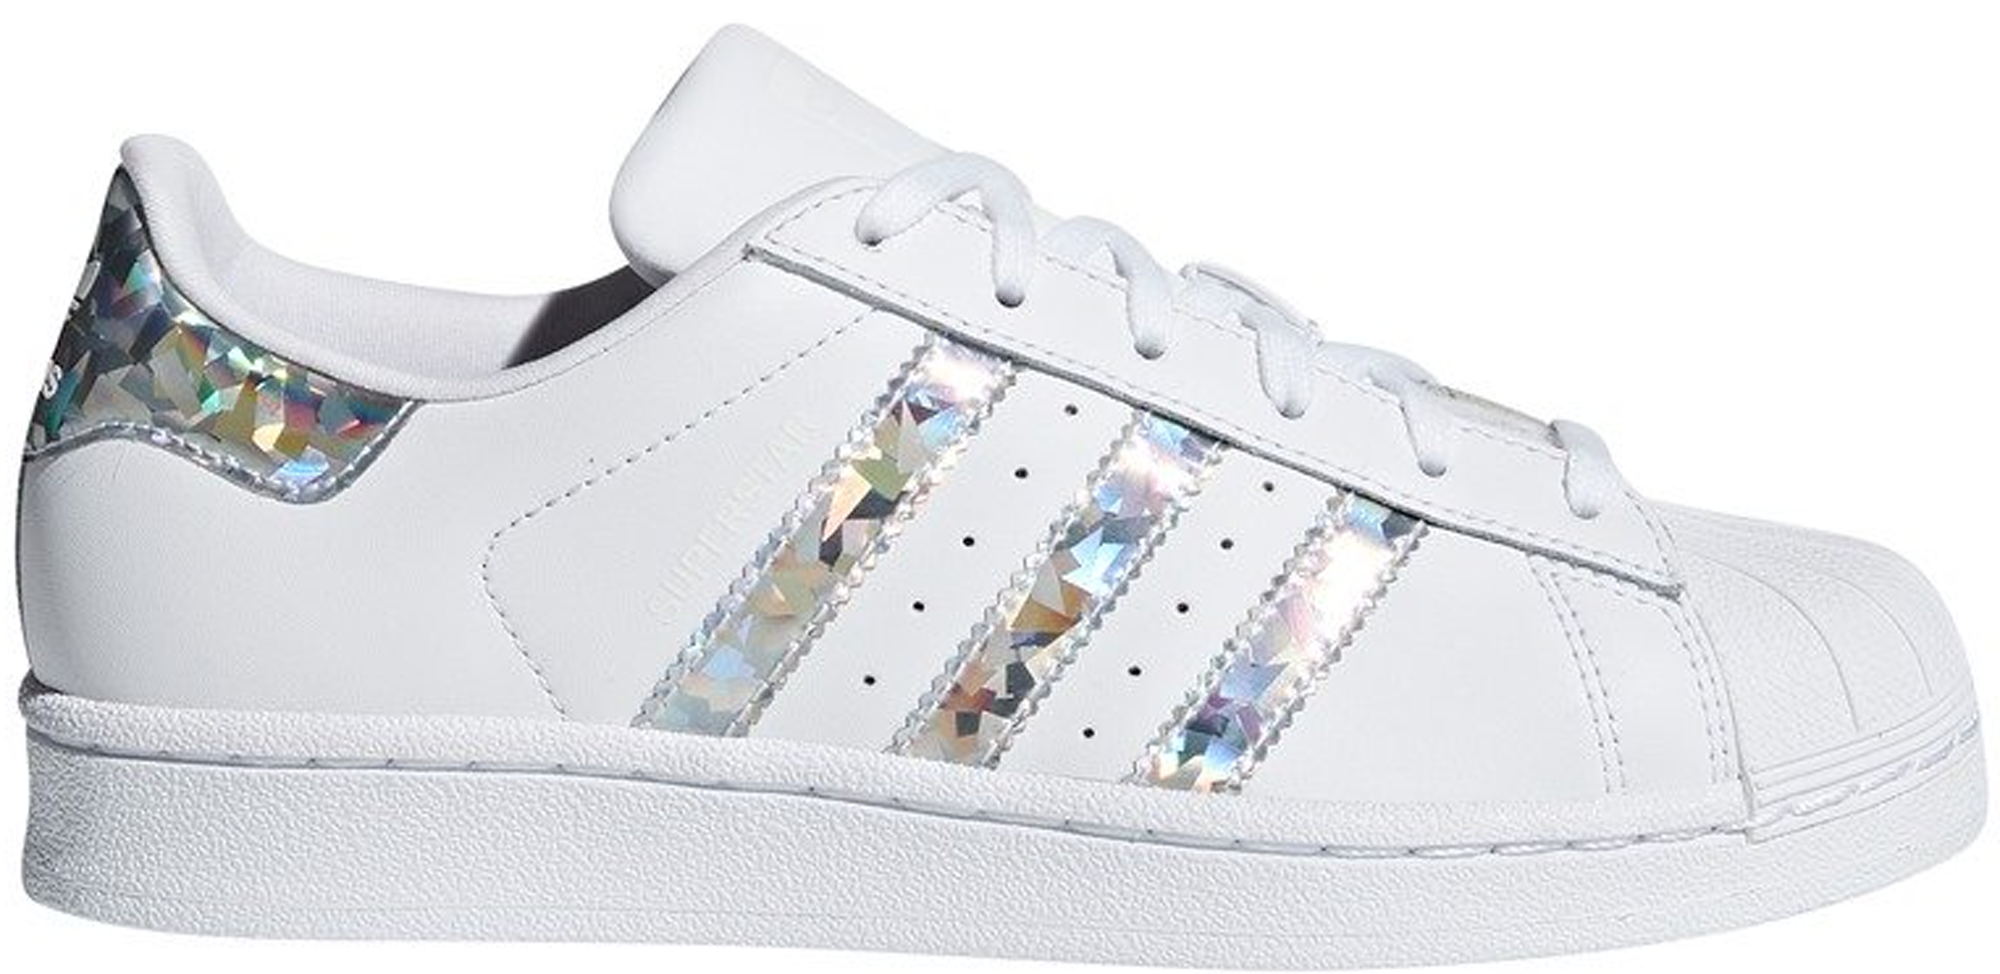 adidas Superstar White Holographic Stripes